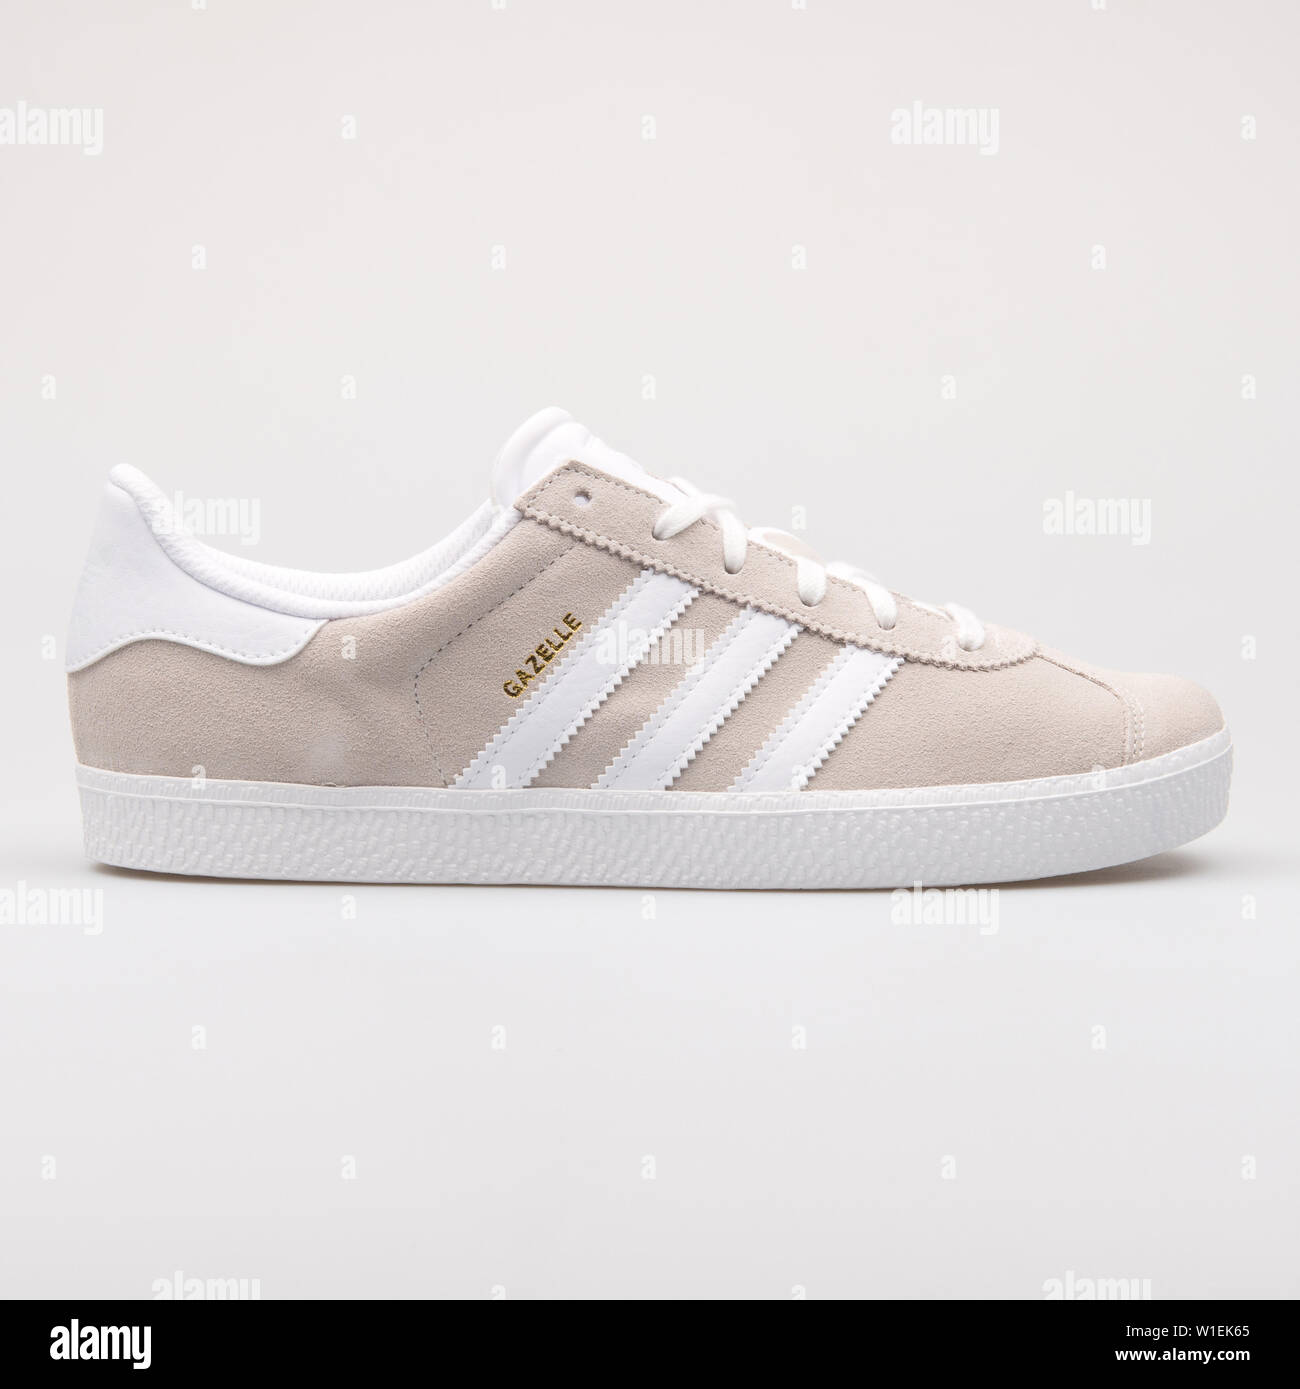 Adidas Gazelle Trainers High Resolution Stock Photography and ...